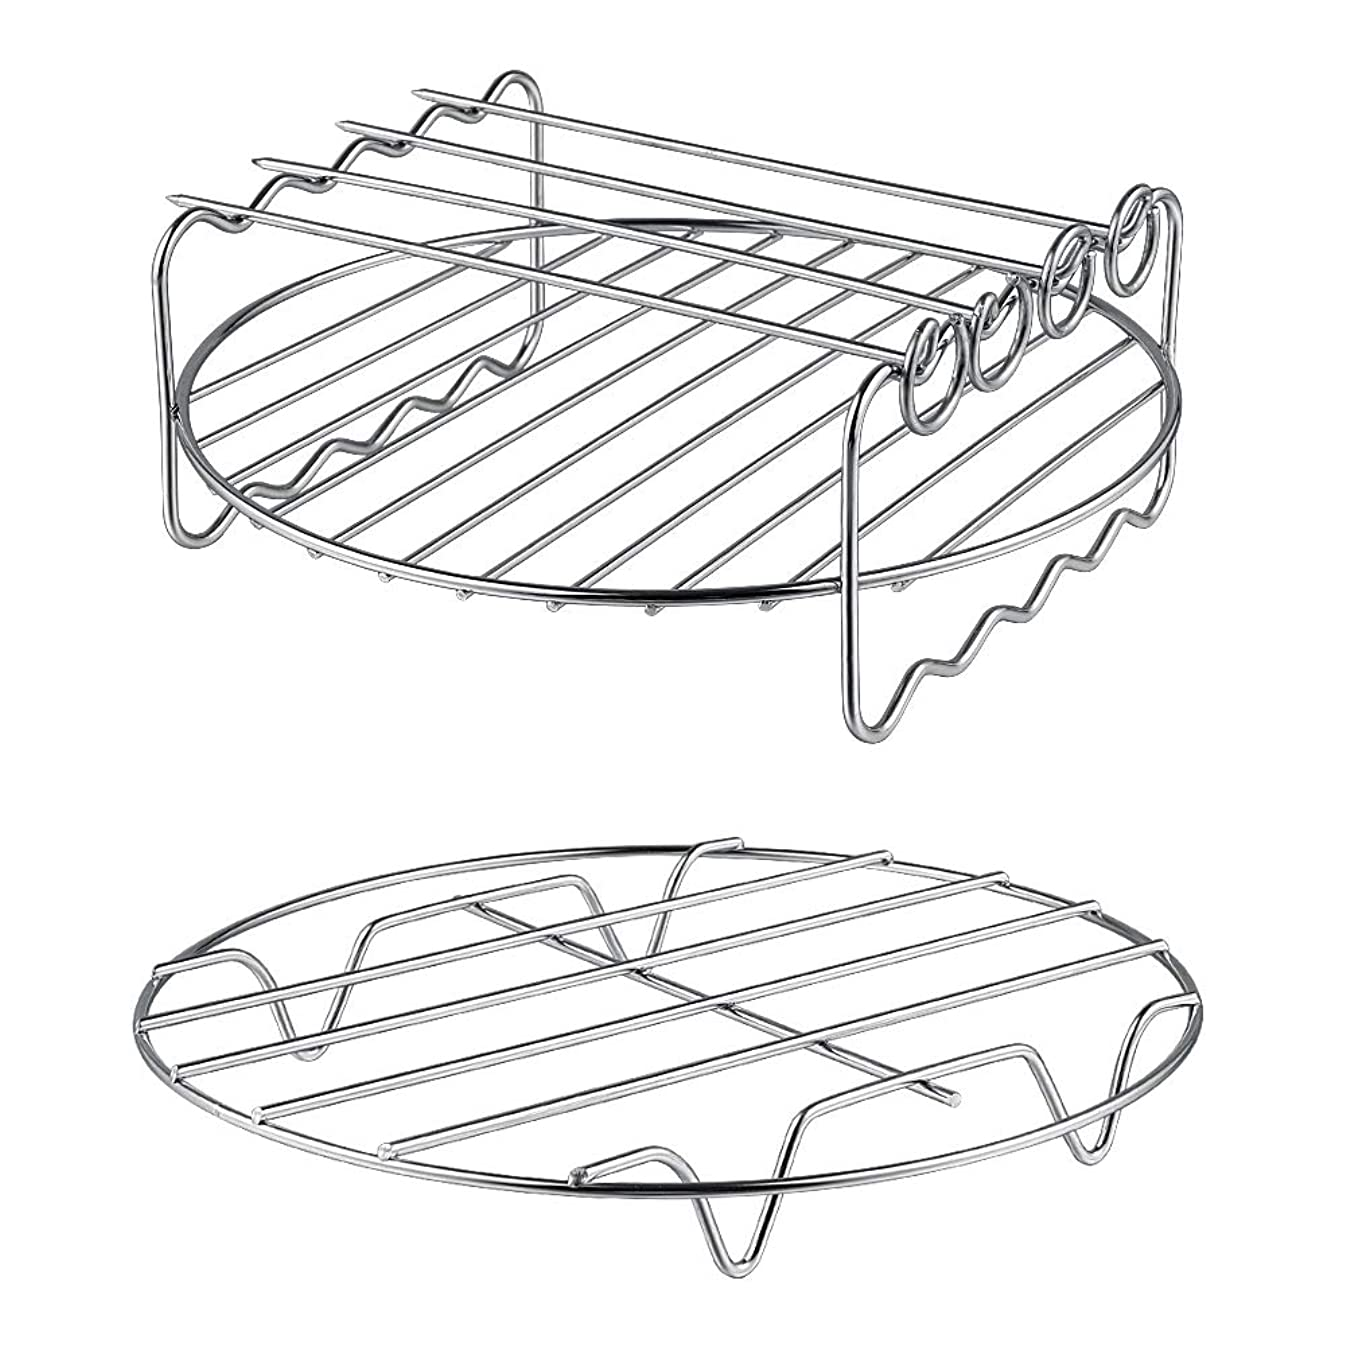 XL Air Fryer Accessories-Air Fryer Rack Set of 2, MFTEK Multi-purpose Double Layer Rack with Skewer, Compatible with XL Power Airfryer Philips